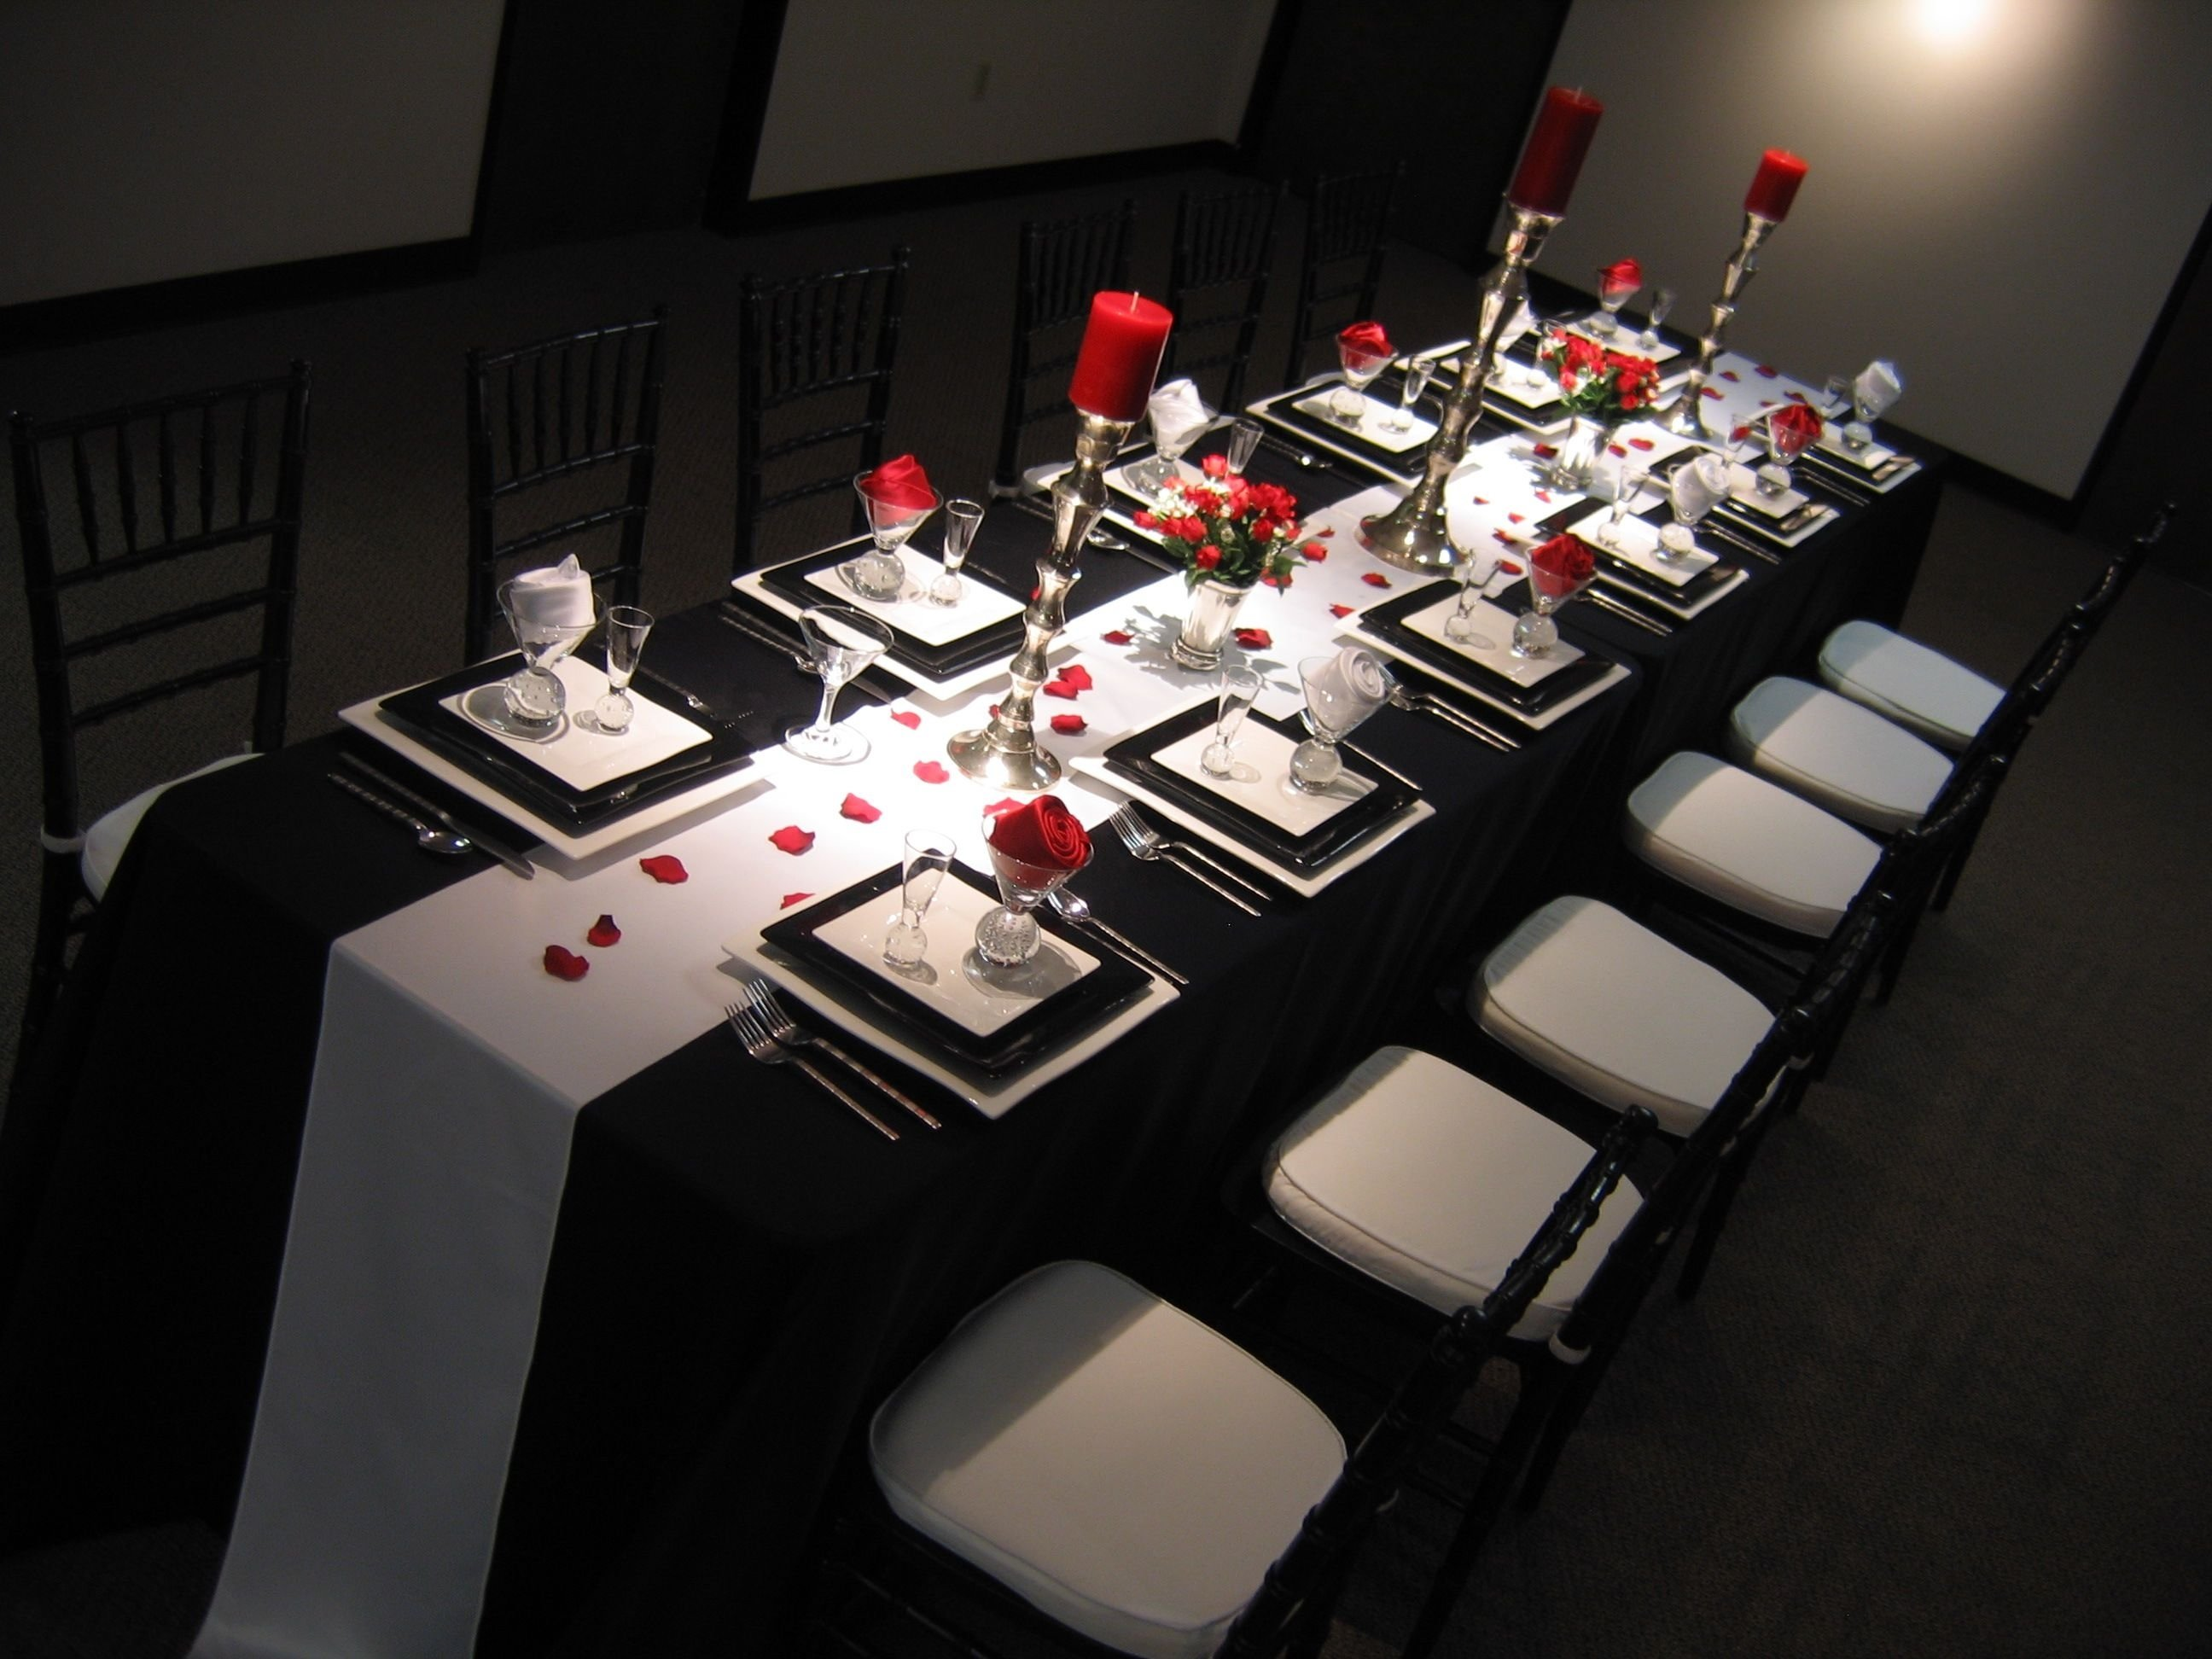 10 Ideal Black Red And White Wedding Ideas silver wedding anniversary decorating ideas red black and white 1